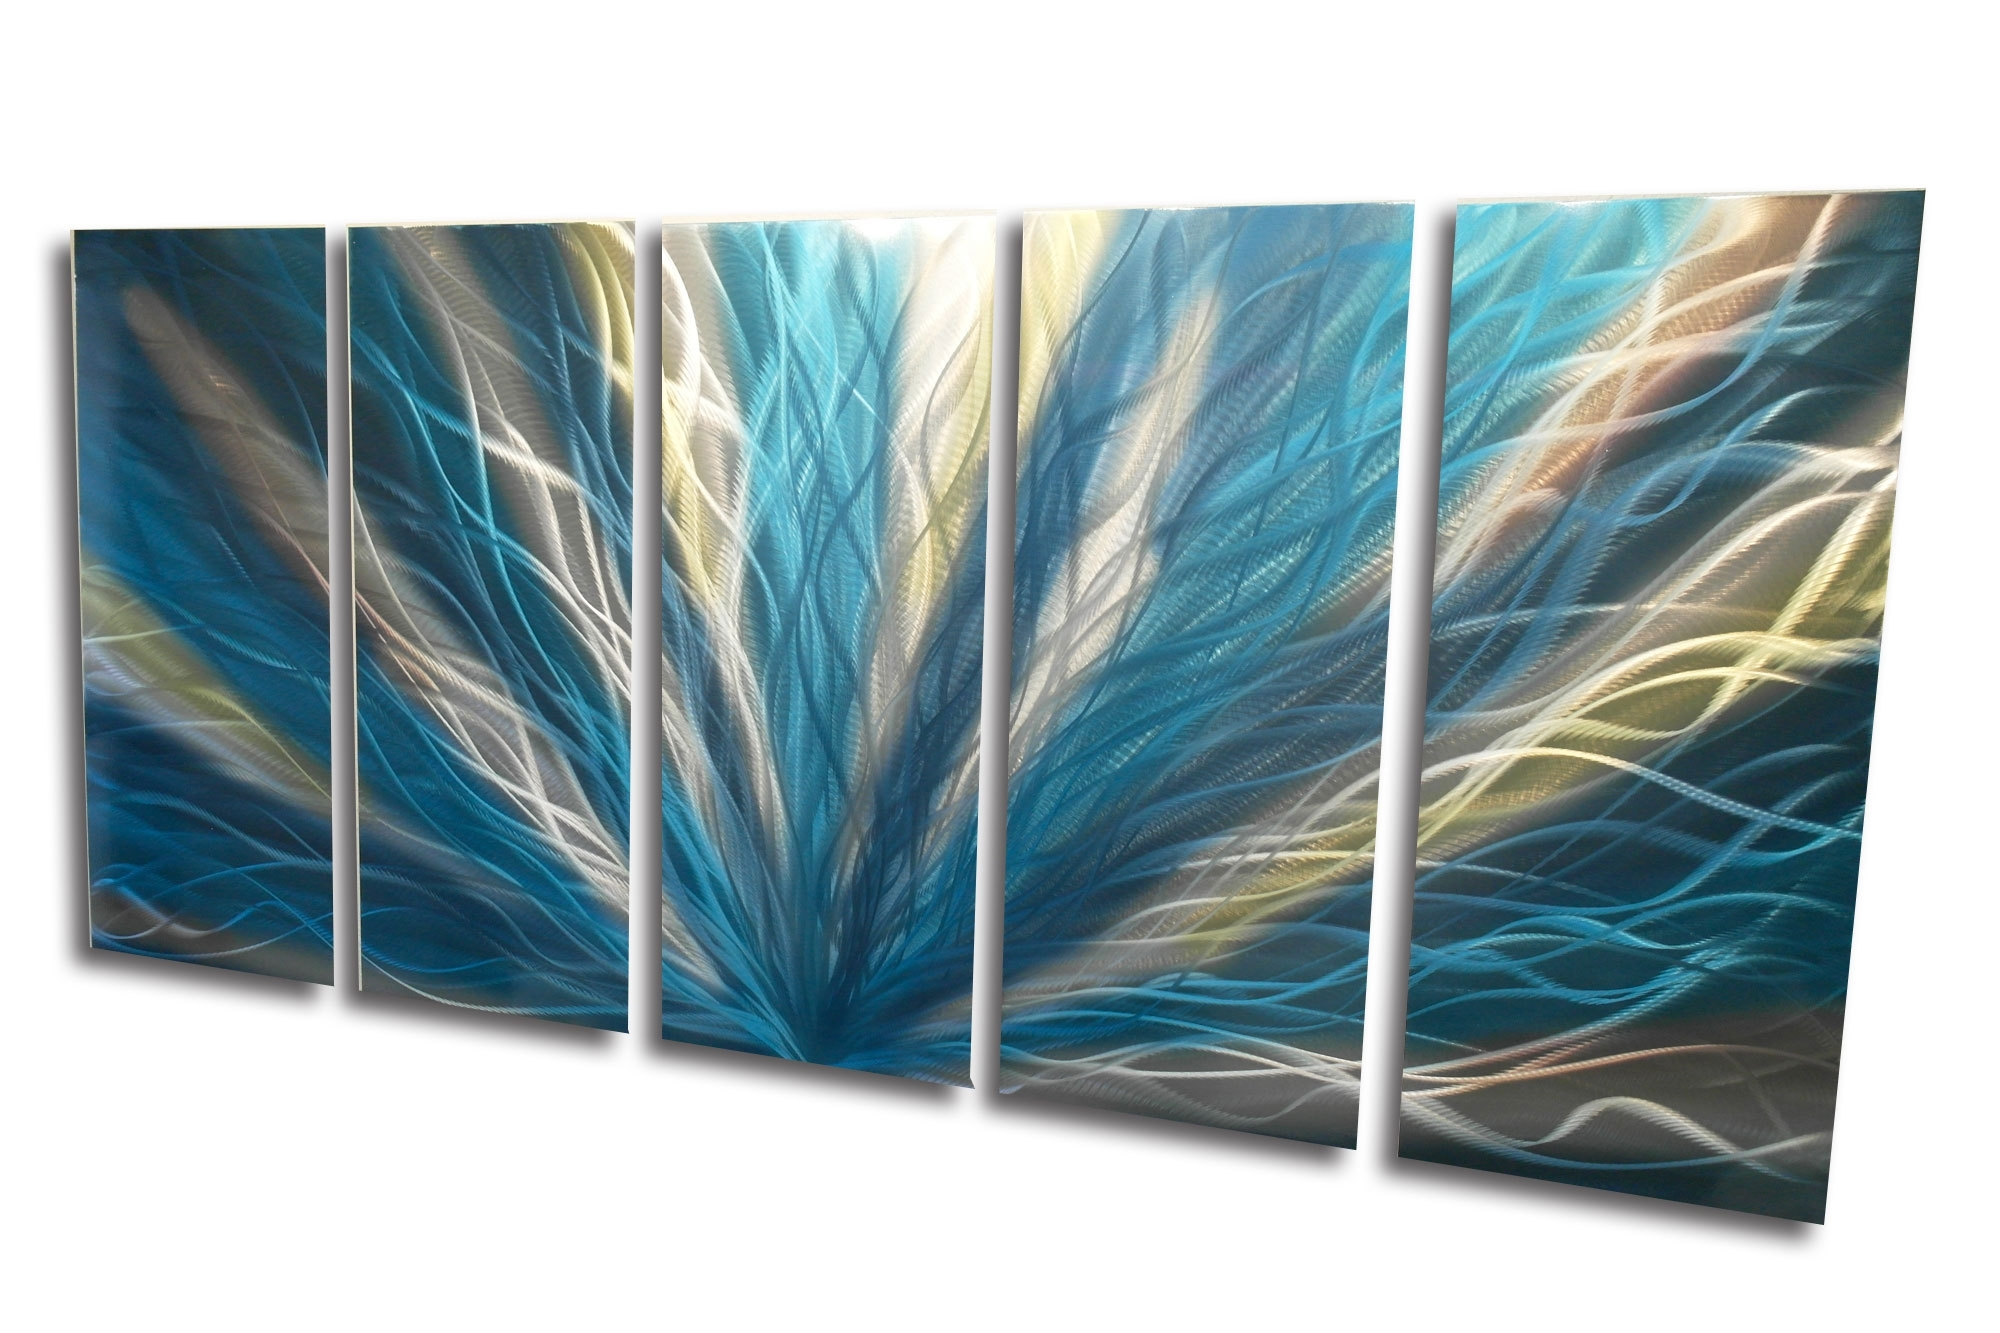 Popular Home · Inspiring Art Gallery · Online Store Poweredstorenvy For Teal And Gold Wall Art (View 8 of 15)